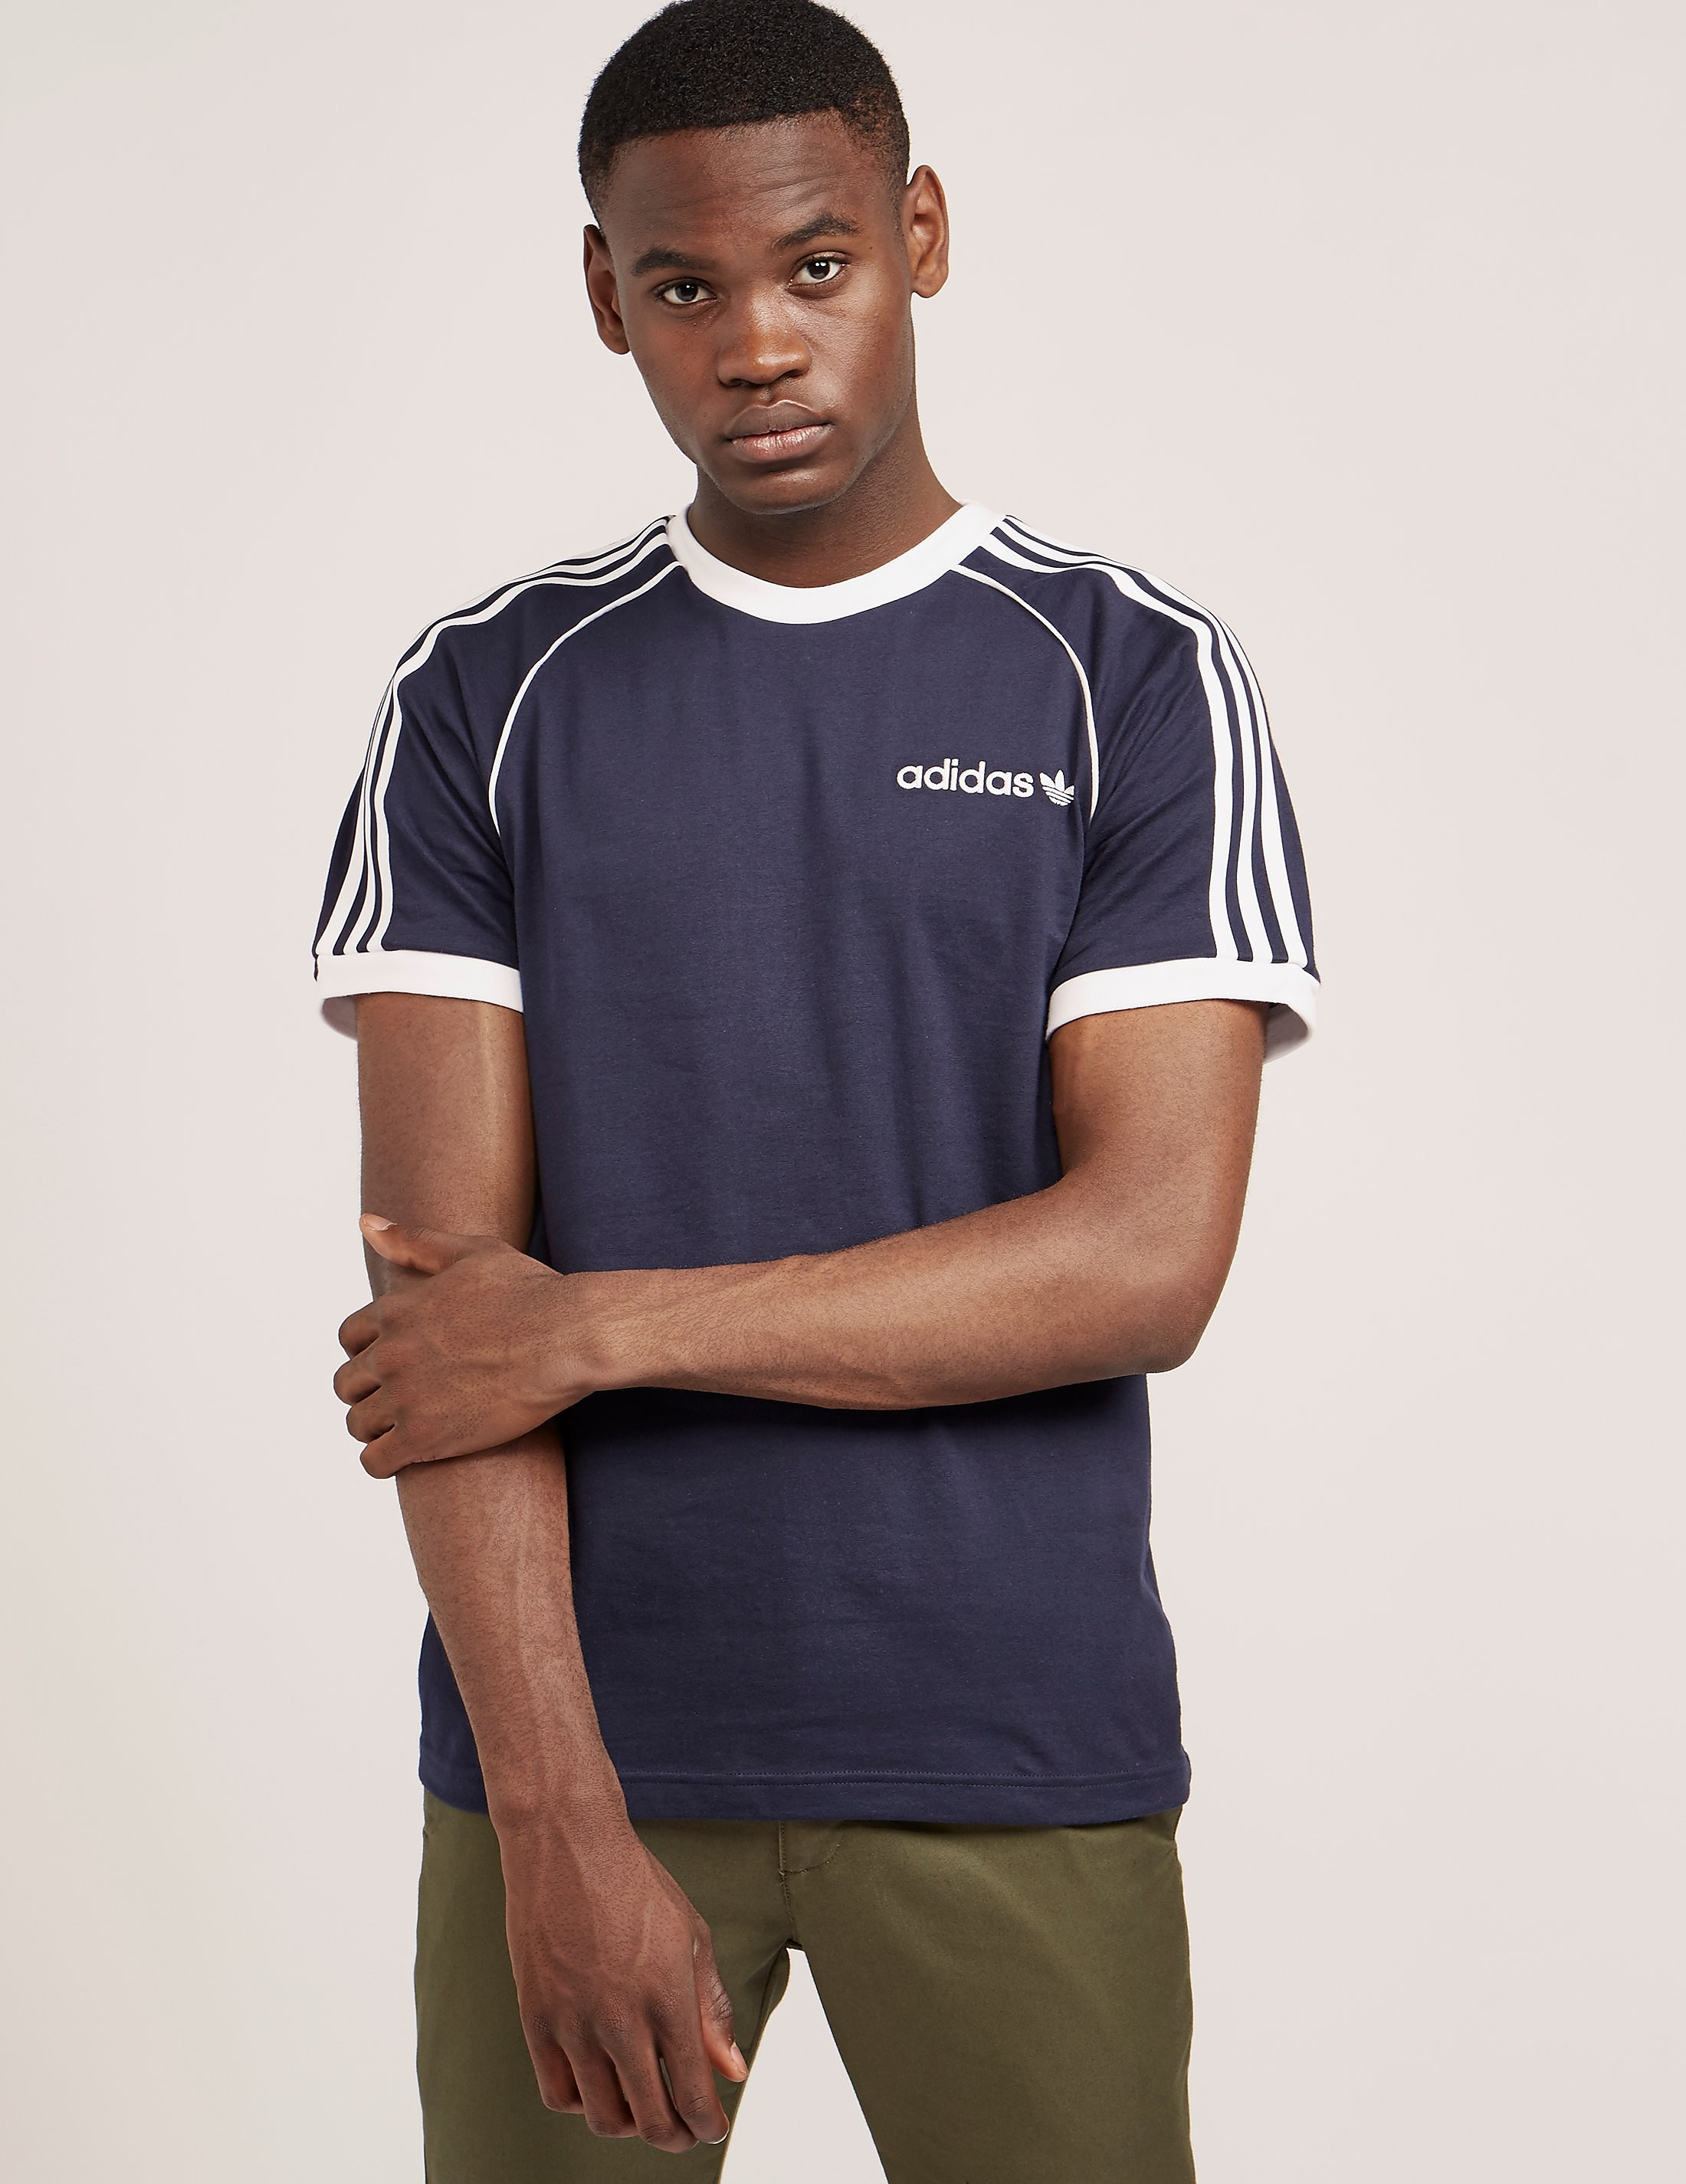 adidas Originals 70's California T-Shirt